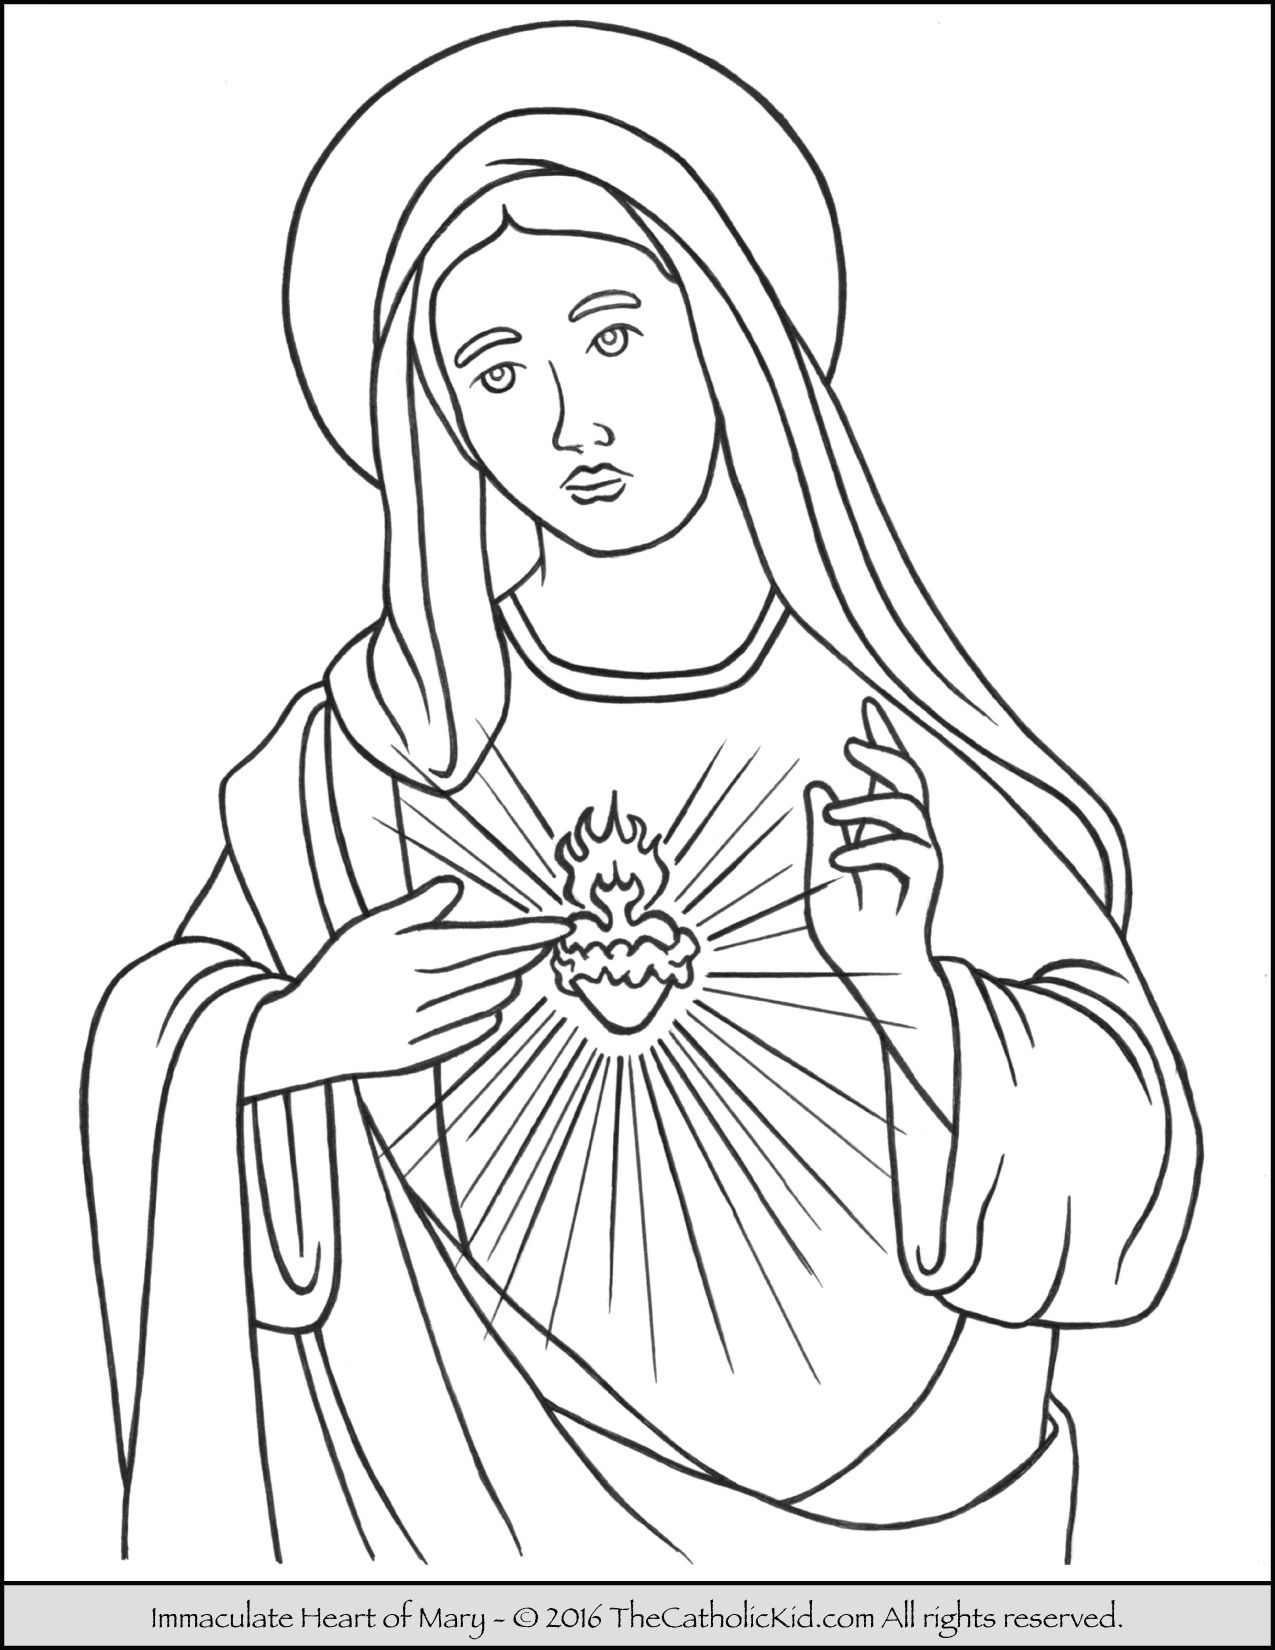 Immaculate Heart of Mary Coloring